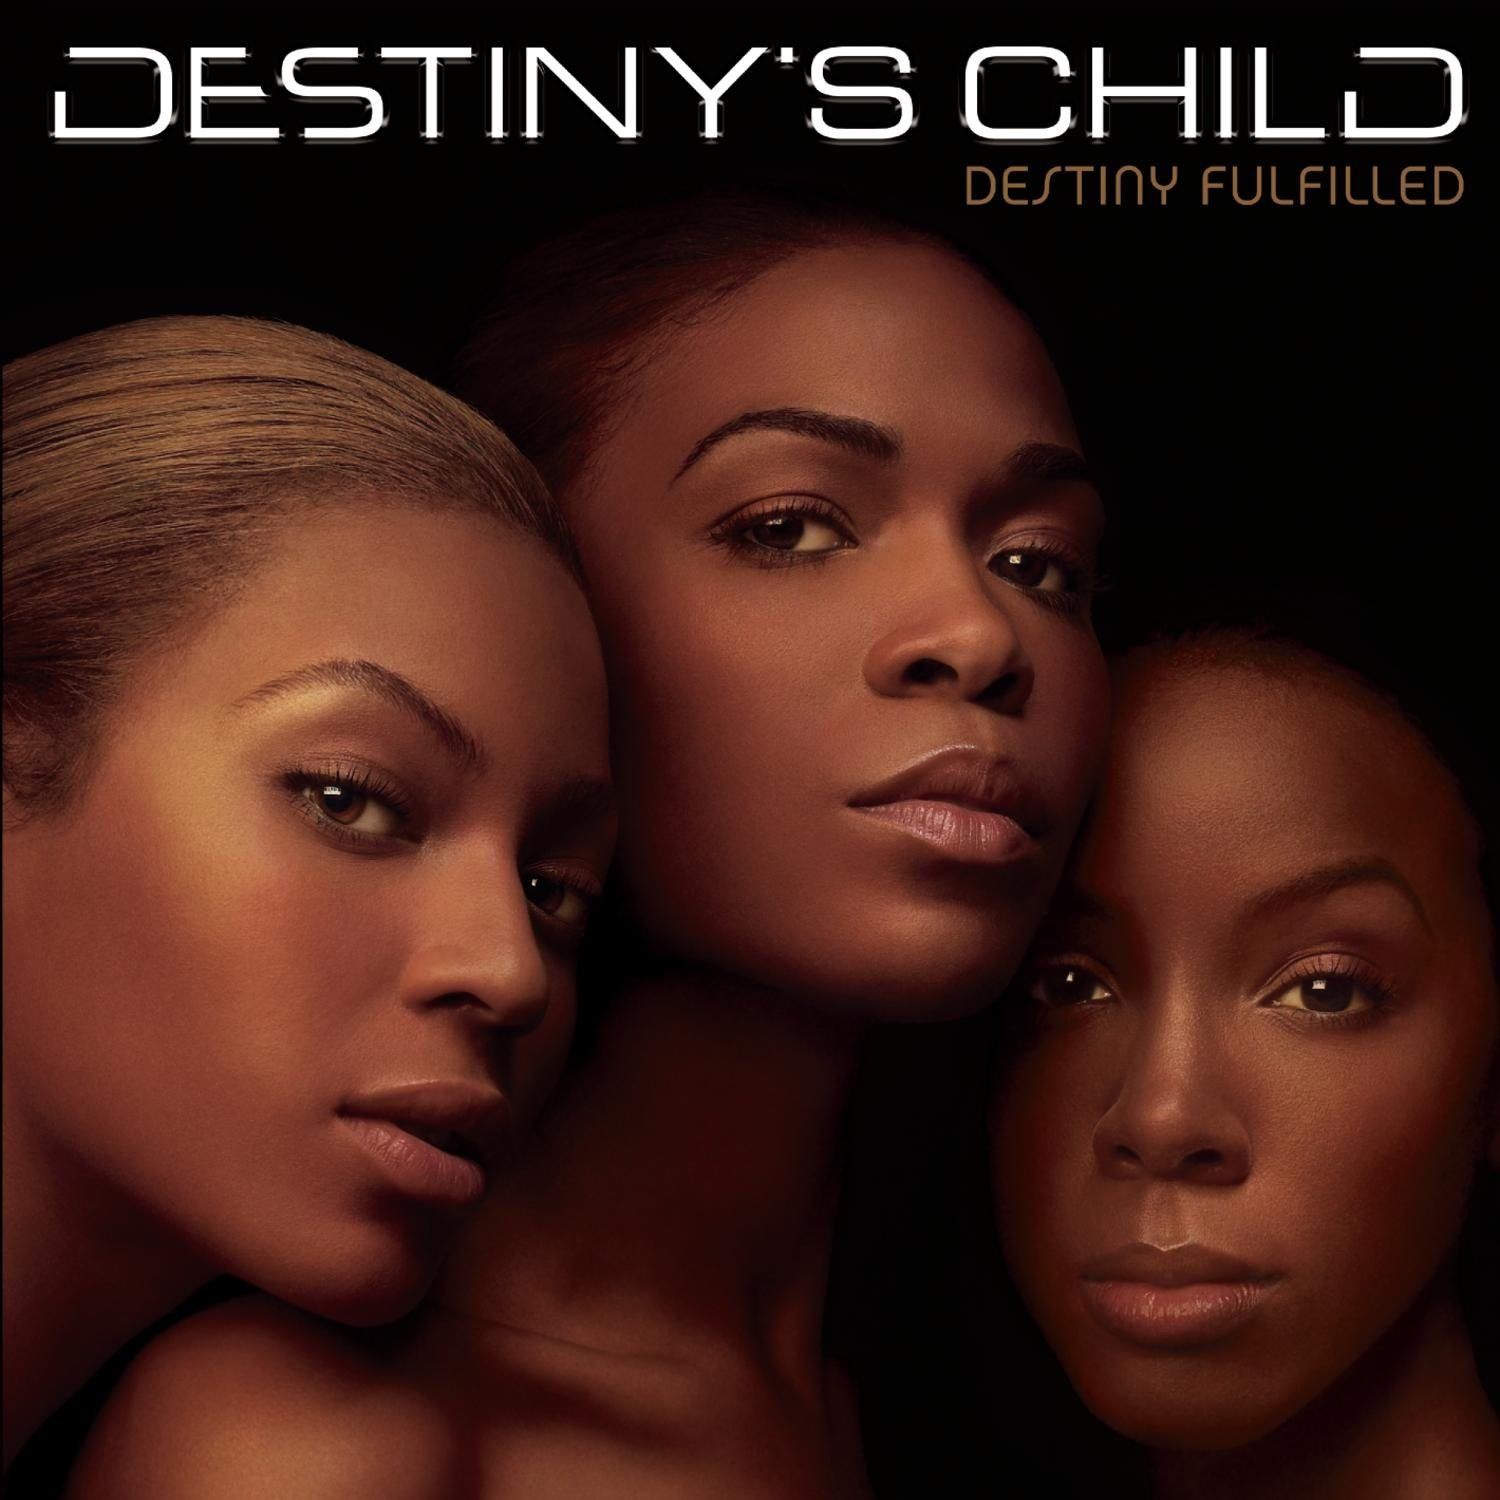 Destiny's Child, Destiny Fulfilled